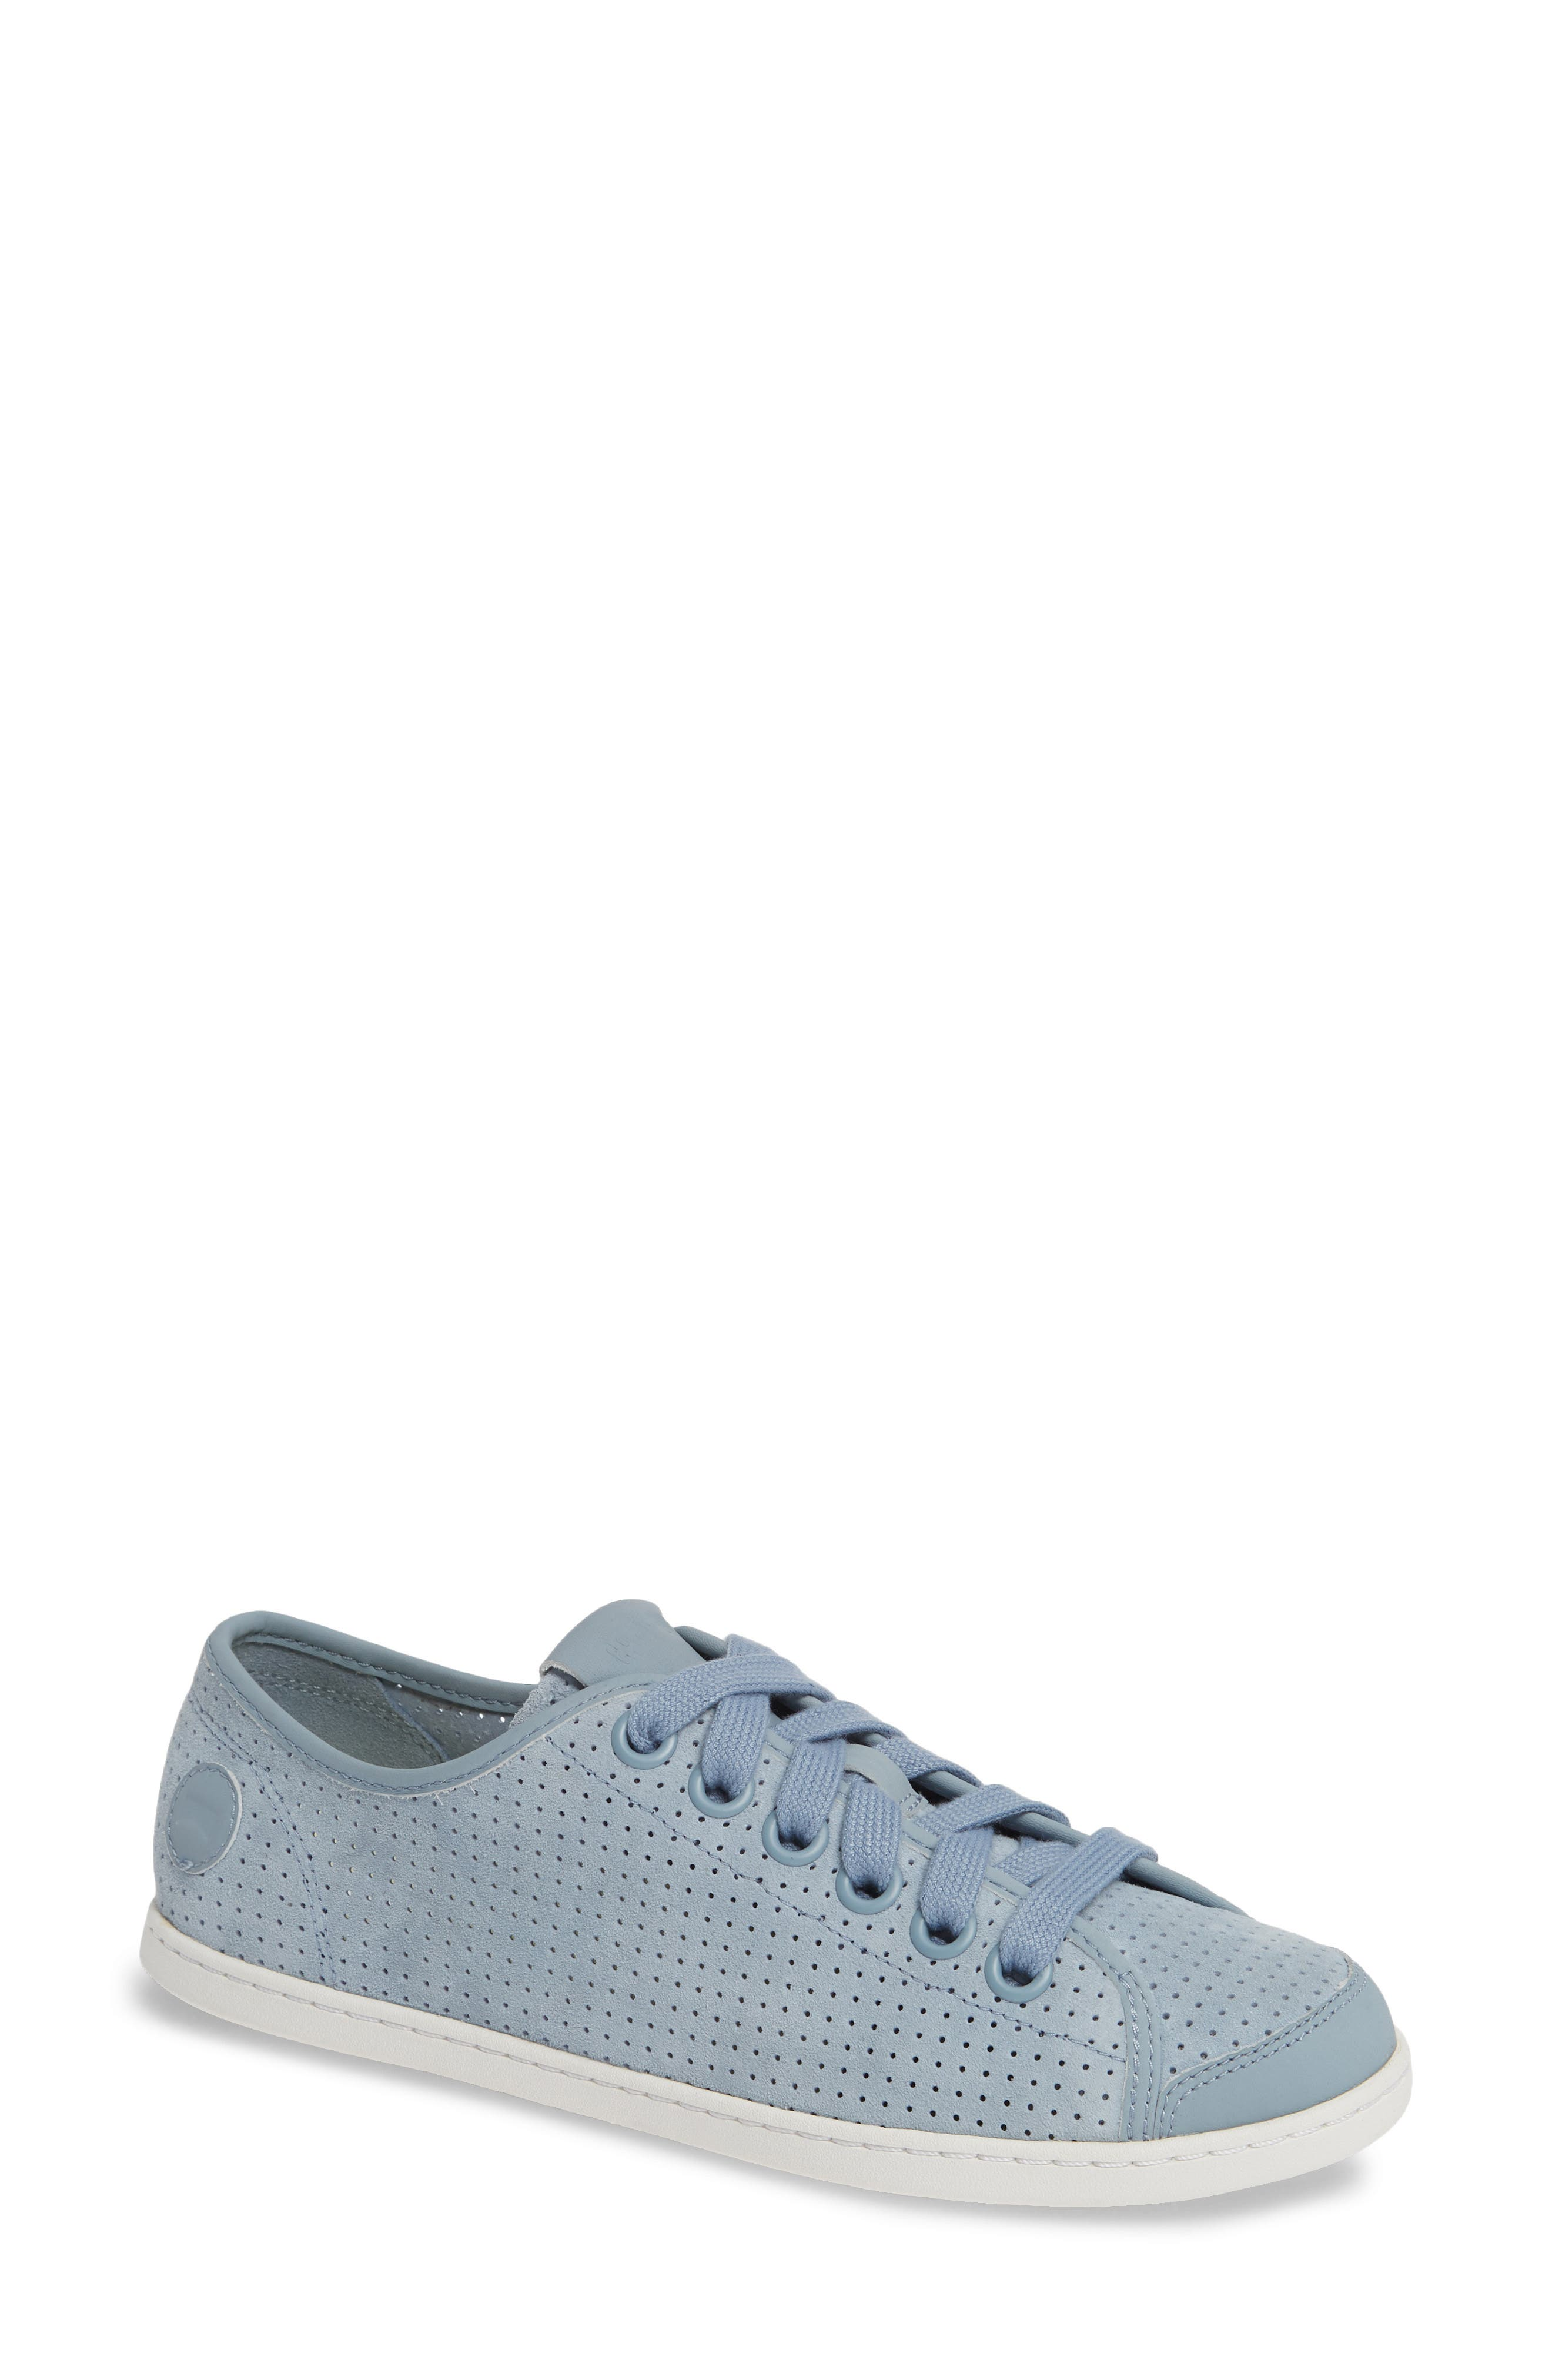 Camper Uno Perforated Sneaker, Blue